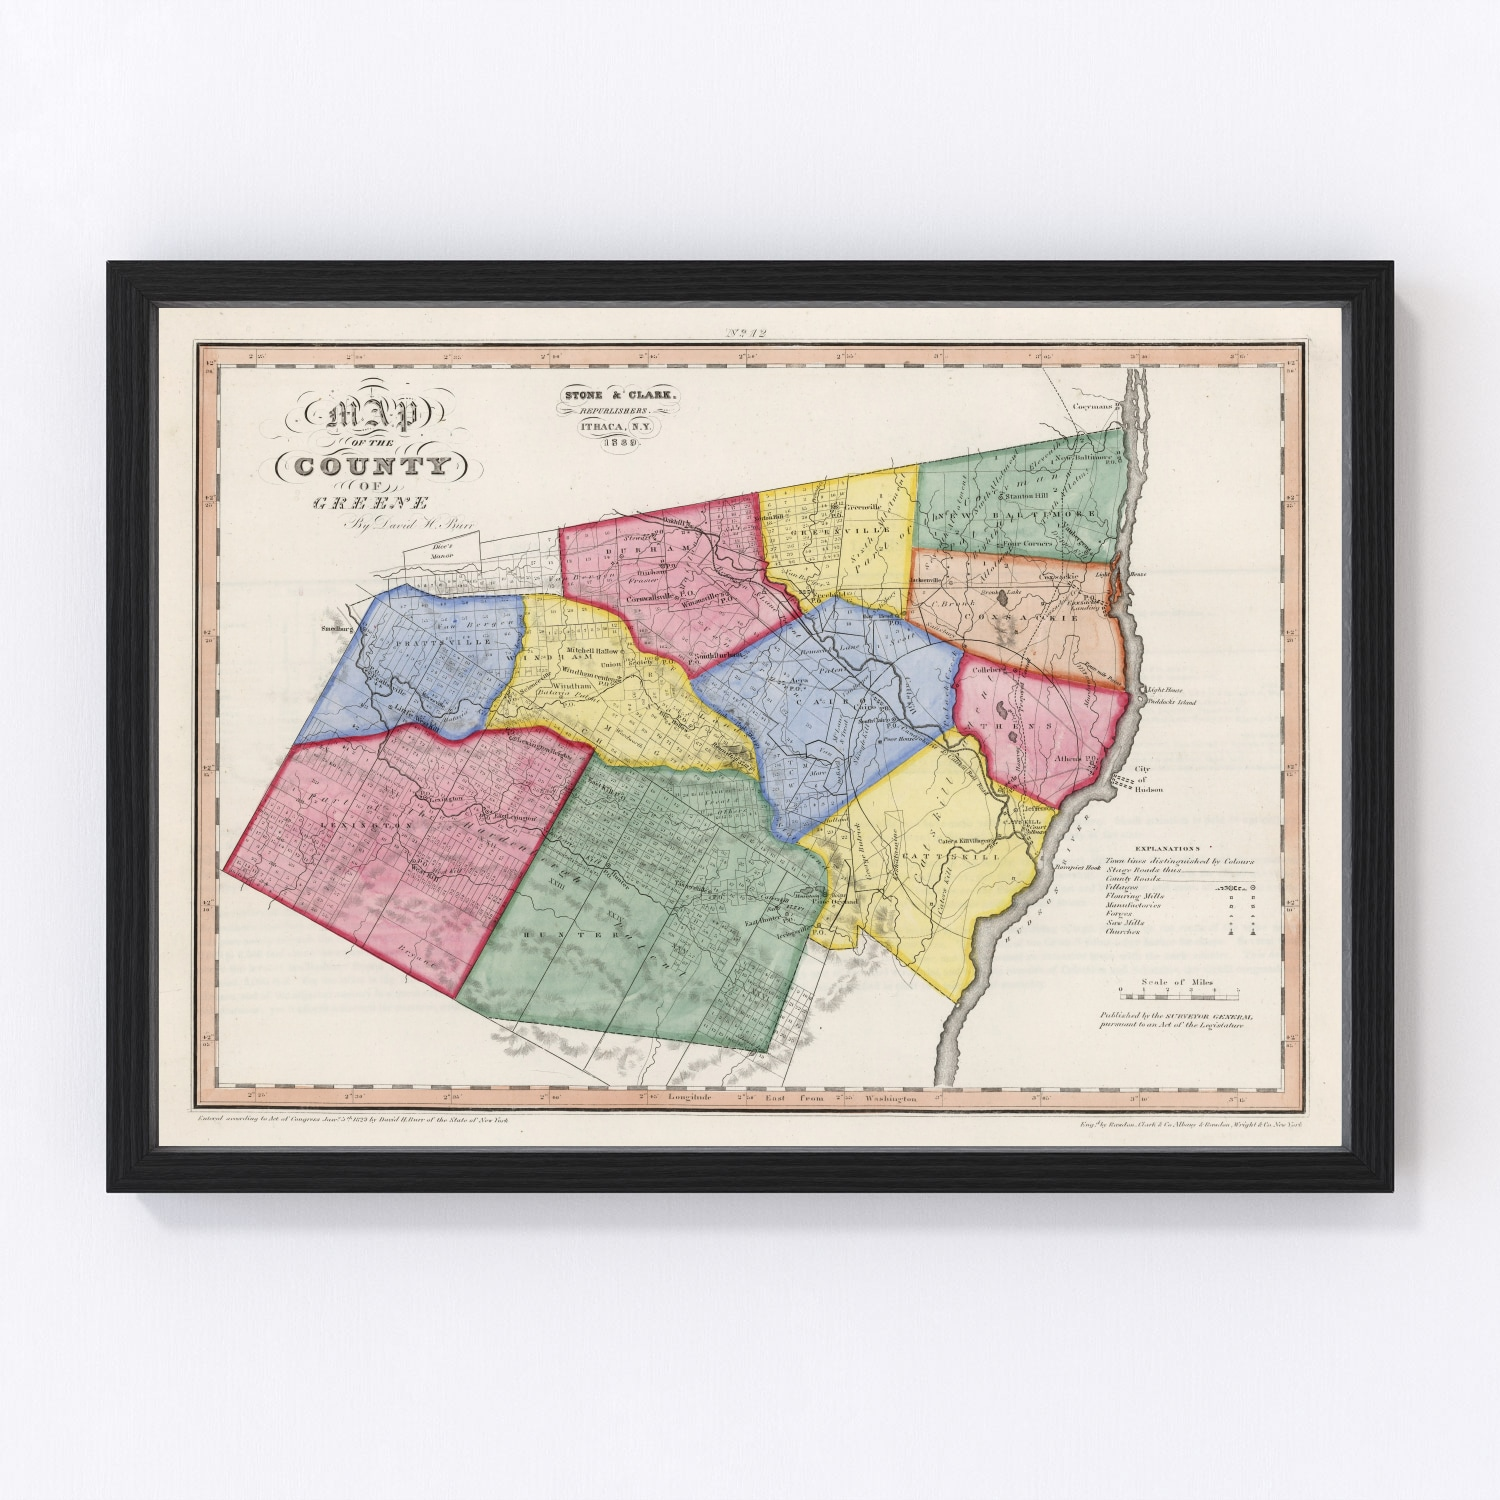 Vintage Map of Greene County New York, 1839